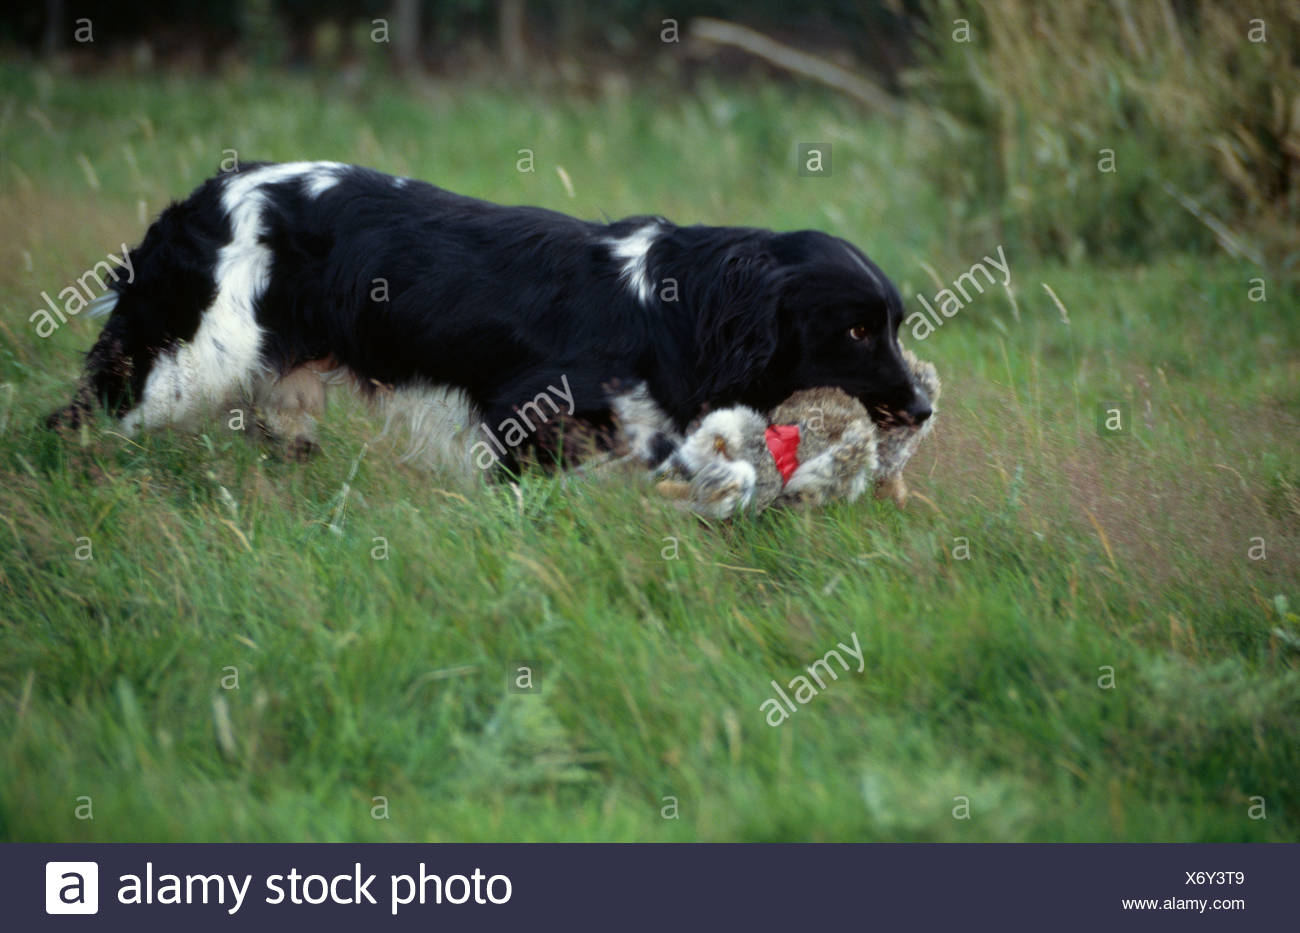 ENGLISH SPRINGER SPANIEL STANDING IN FIELD WITH DEAD RABBIT - Stock Image